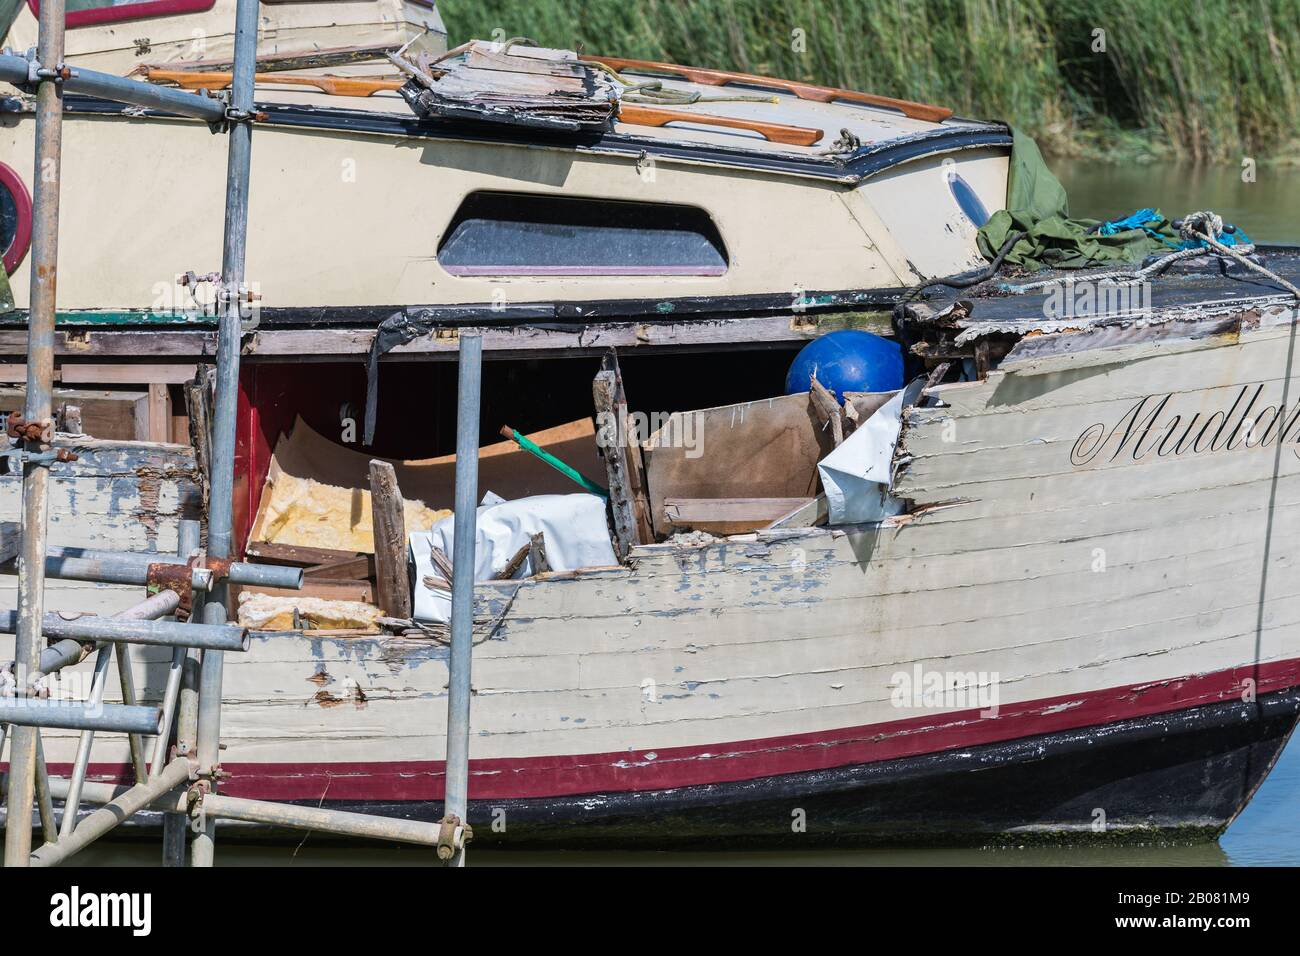 Neglected damaged wooden boat with panels missing, in need or maintenance and repair. Stock Photo